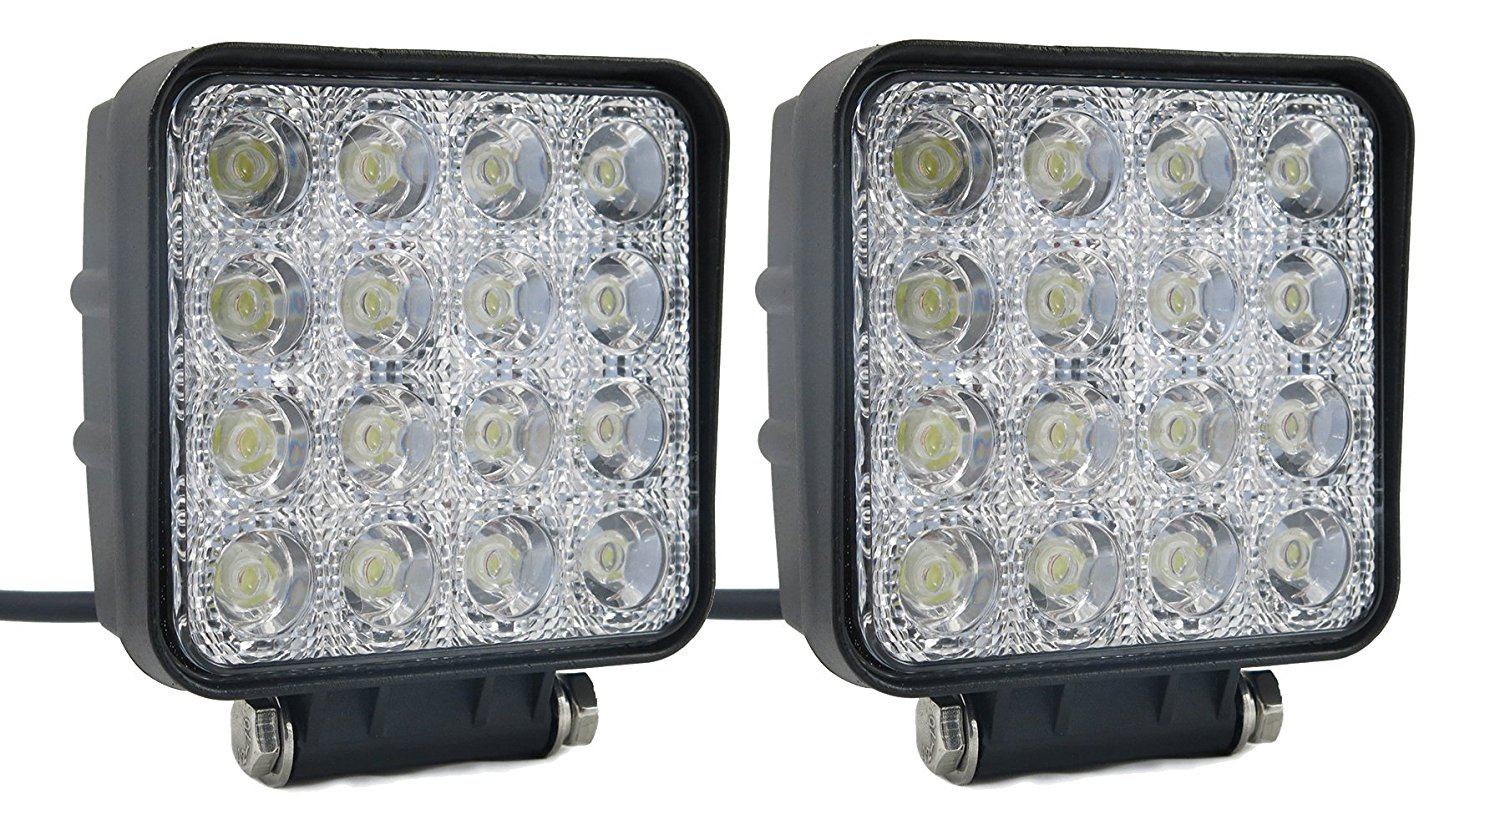 SUCOOL 2pcs one pack 4 inch square 48w led work light off road Flood lights truck lights 4x4 off road tractor jeep work lights fog lamp For Jeep Cabin/Boat/SUV/Truck/Car/ATV/automative/ 10-30V